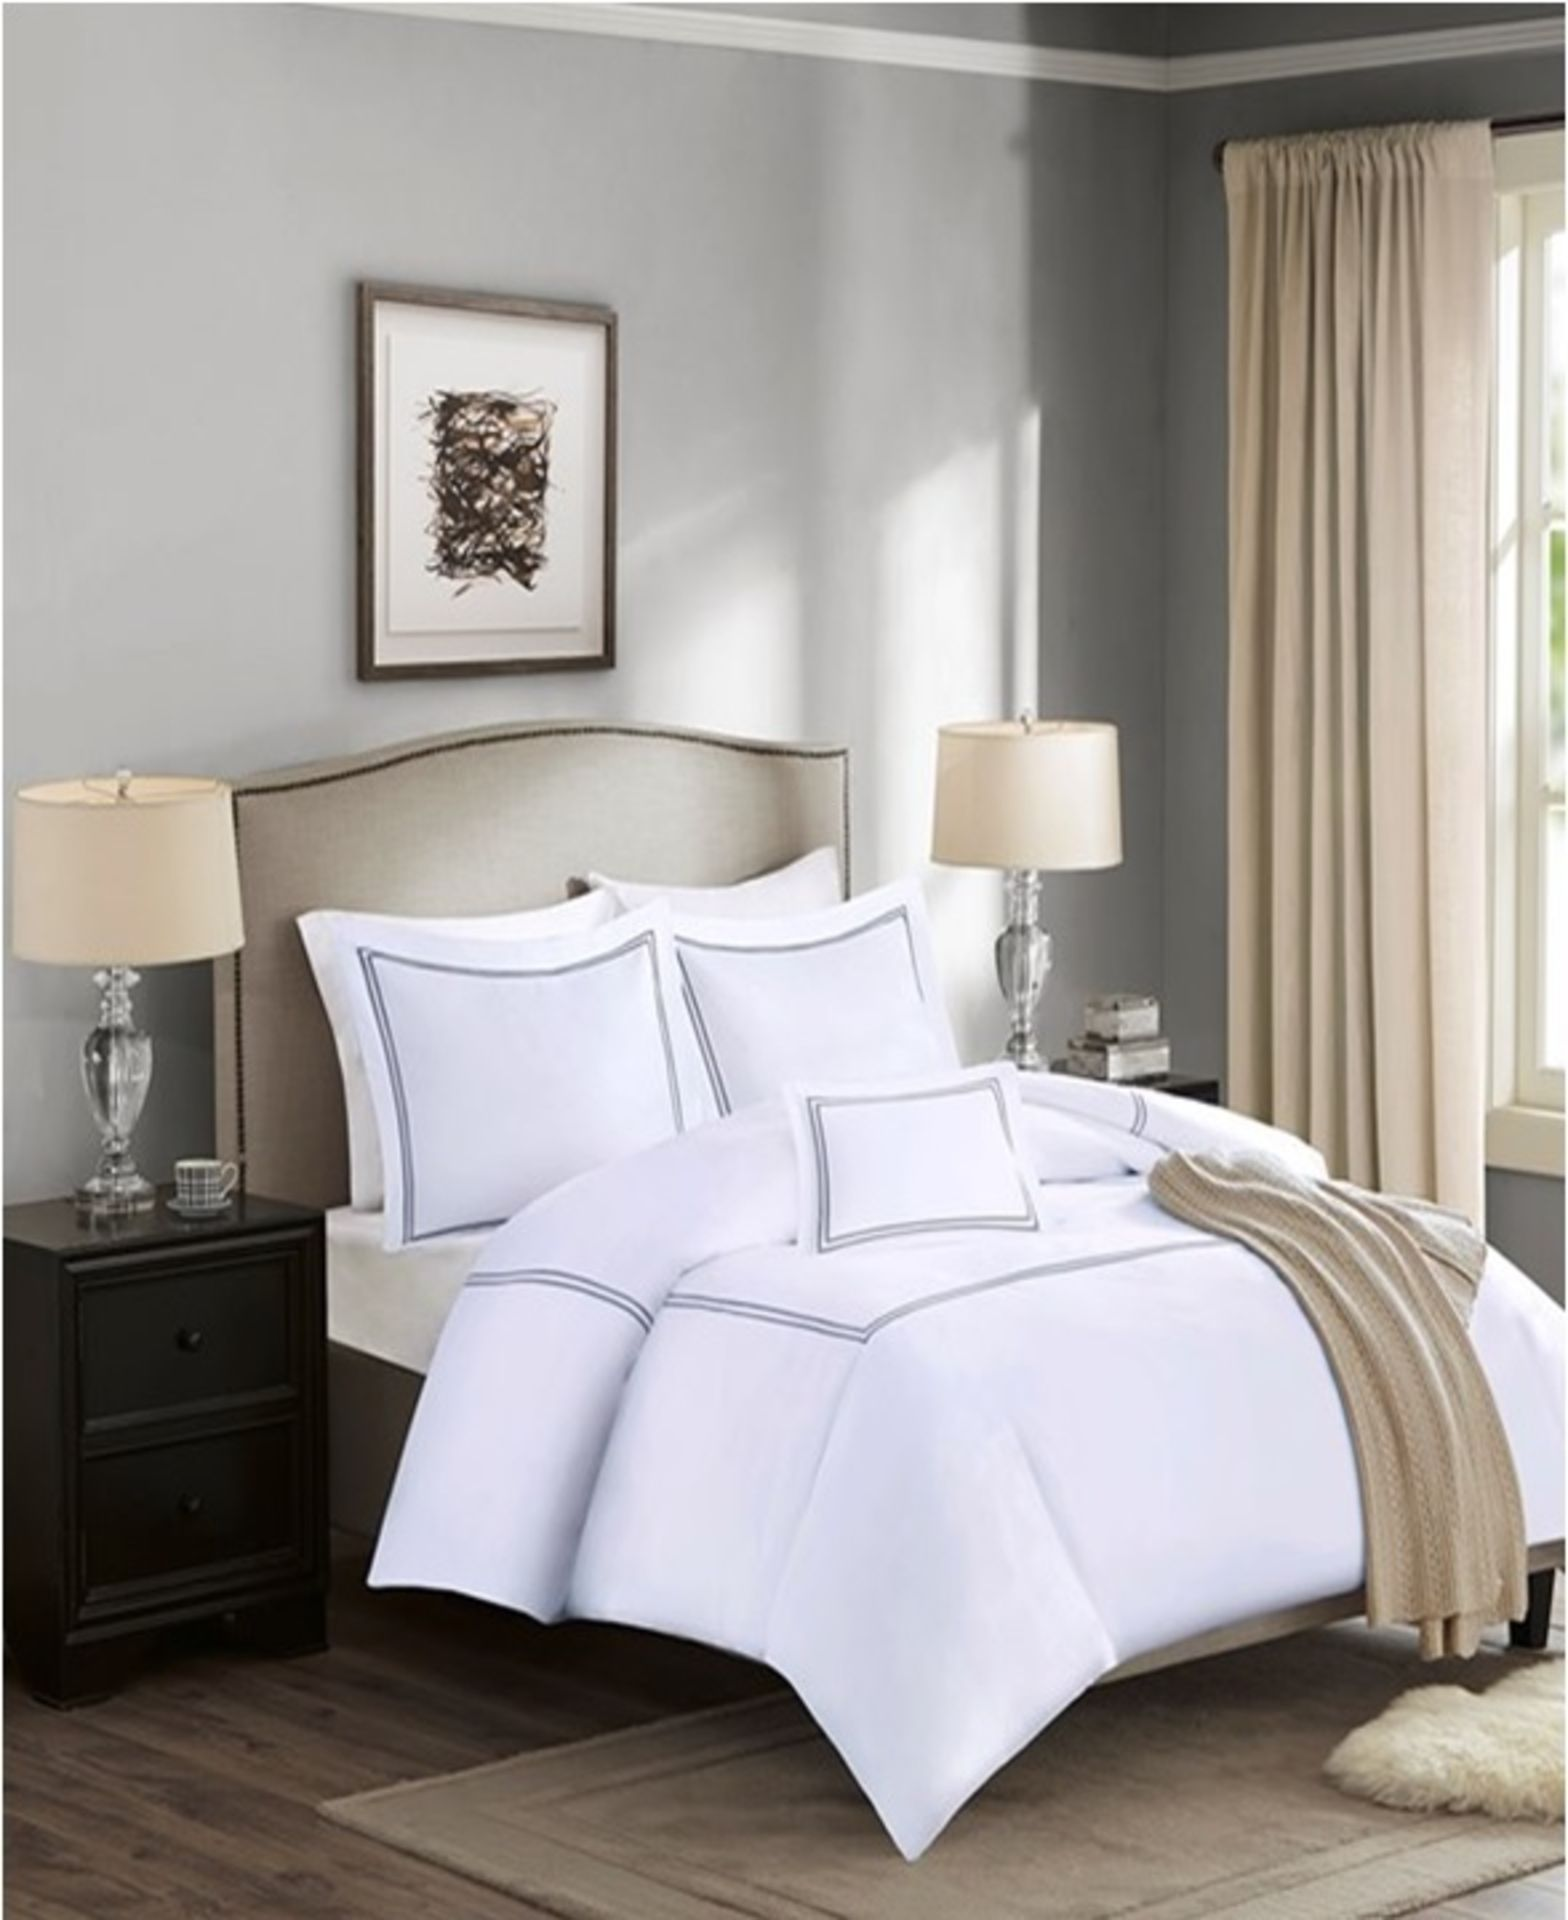 Lot 150 - 1 x Madison Park Luxury Collection Double Duvet Set White - Product Code MP12-0198UK (Brand New -